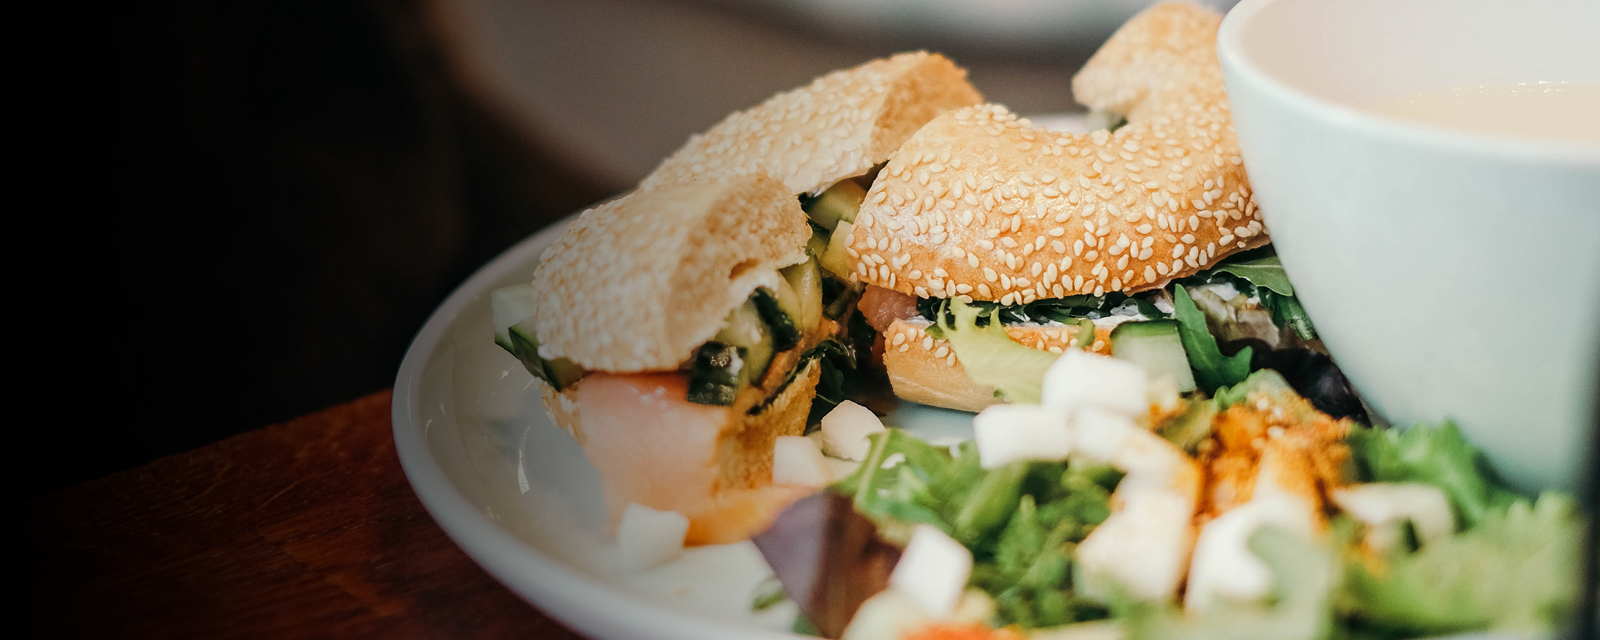 Bagels with salad